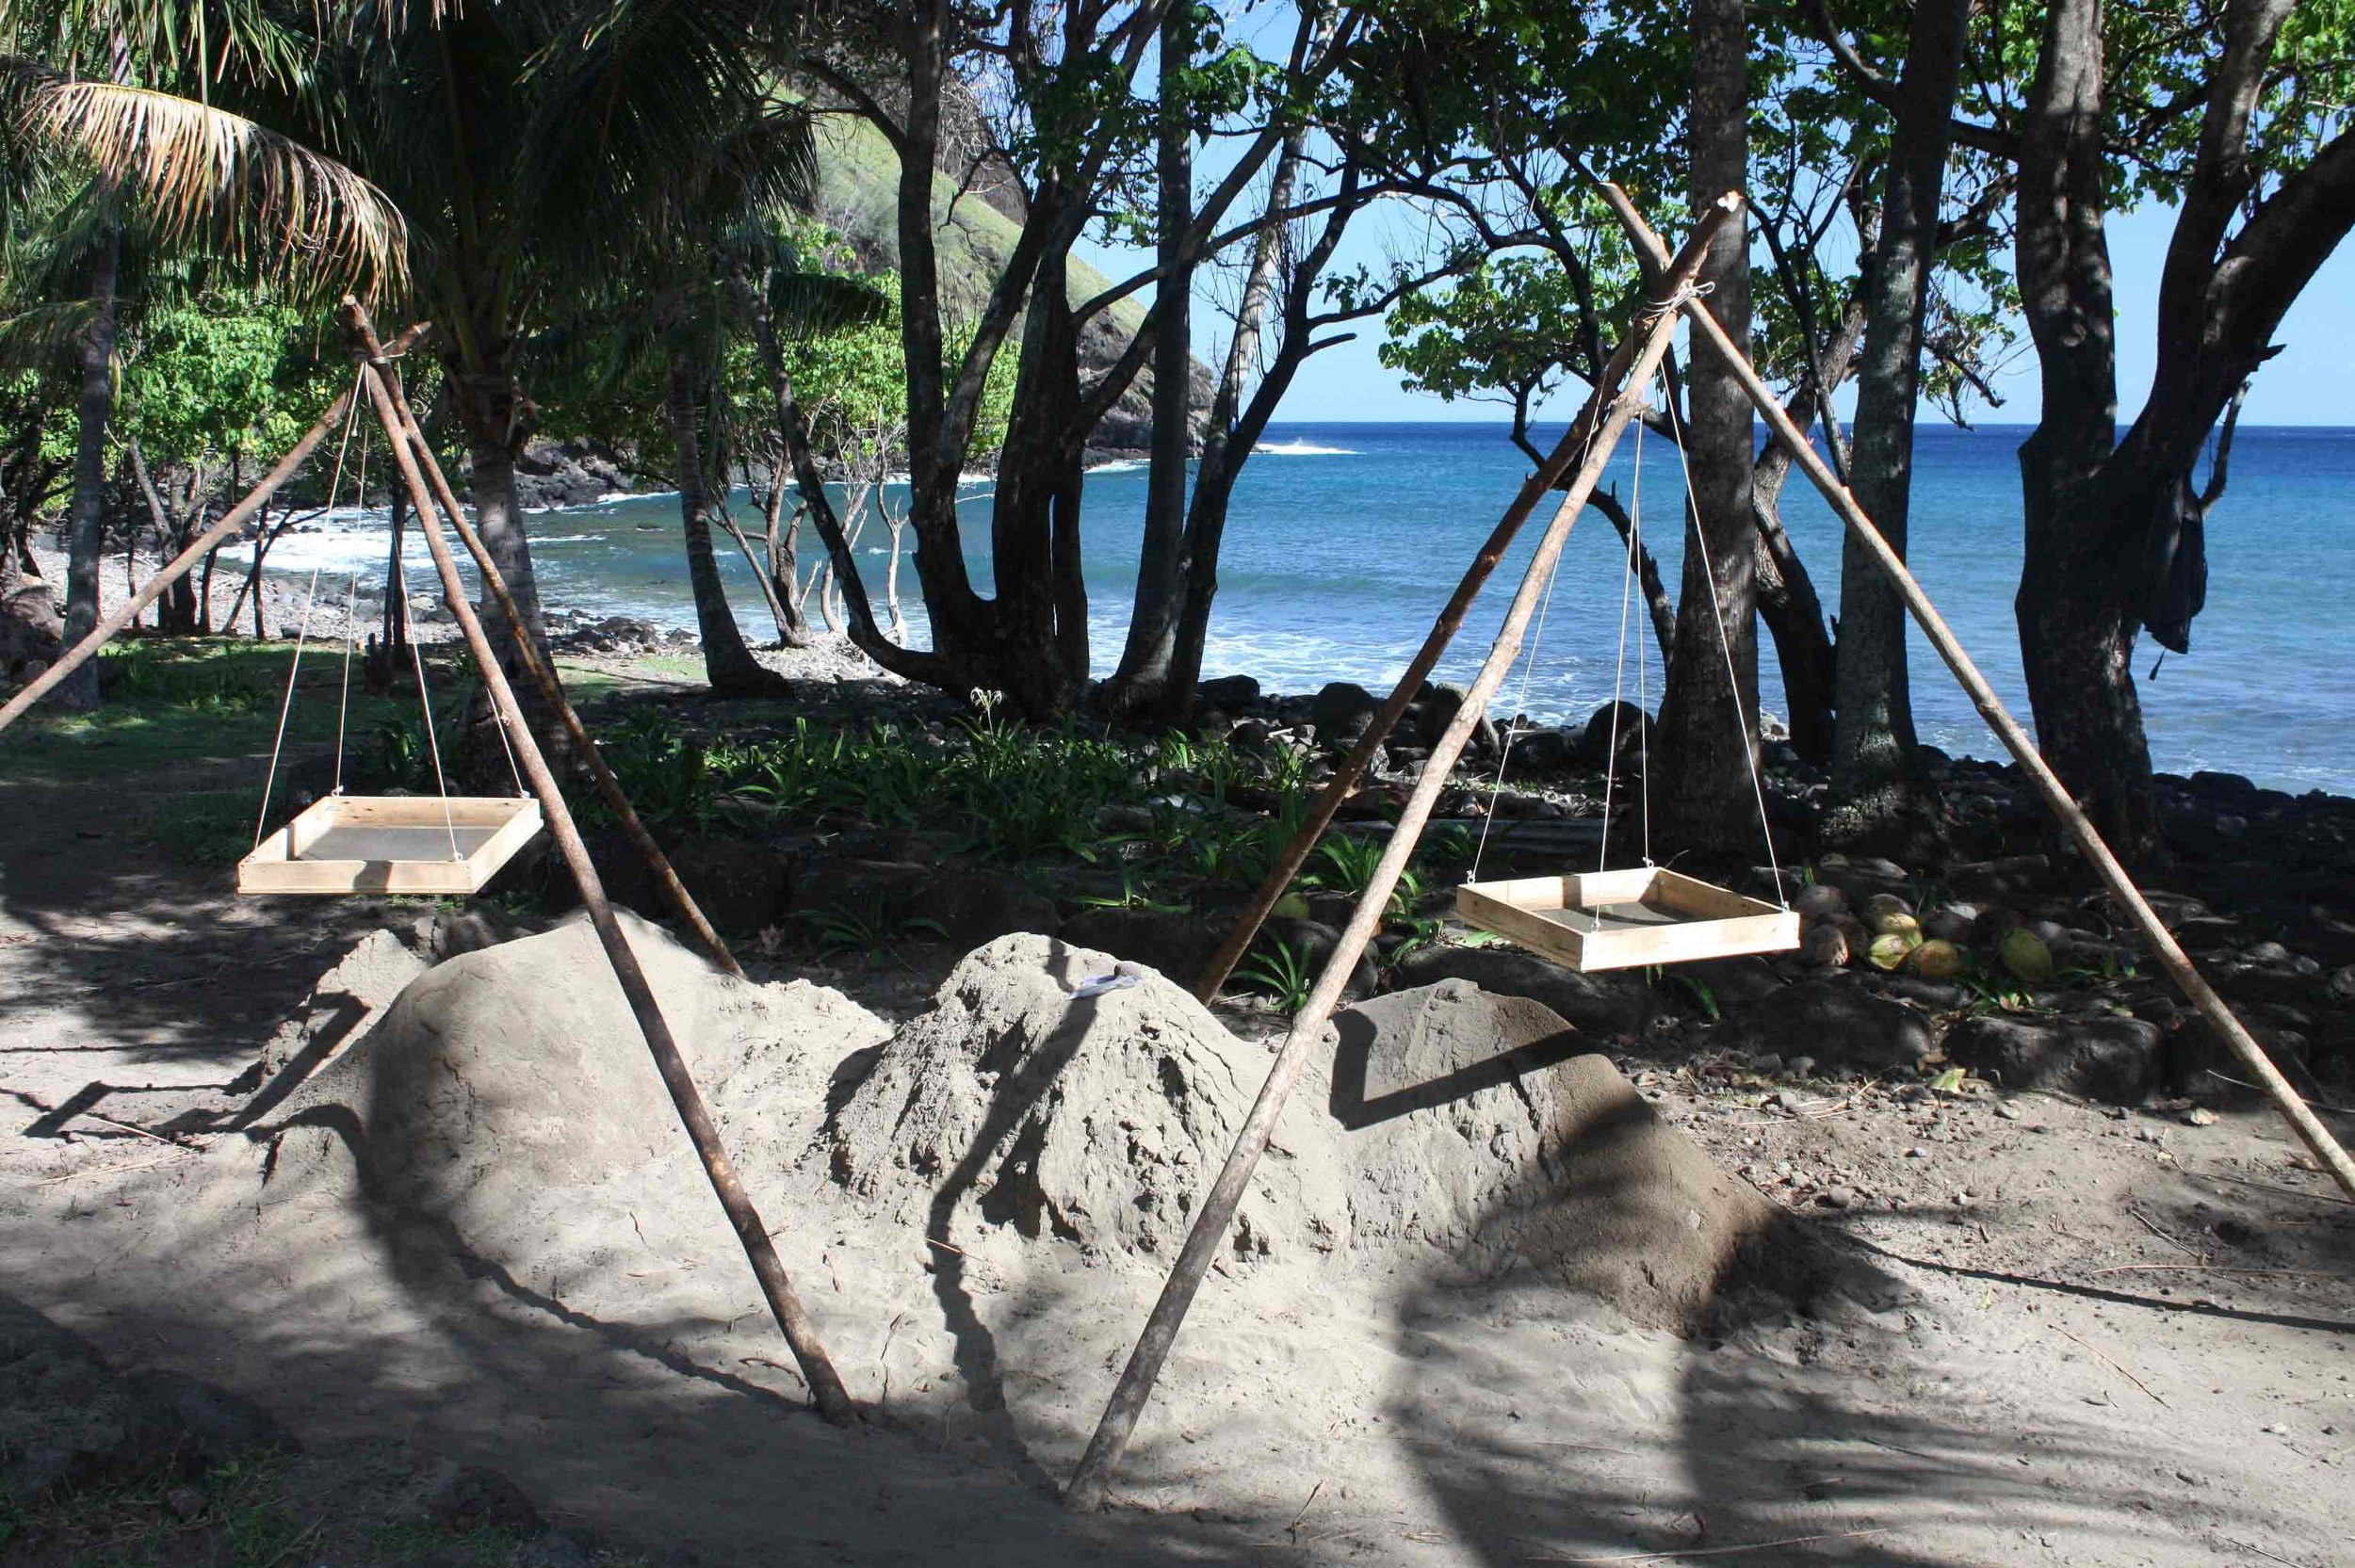 White sand deposits of the Hanamiai Dune allow for the extraordinary preservation of artifacts made of shell and bone.